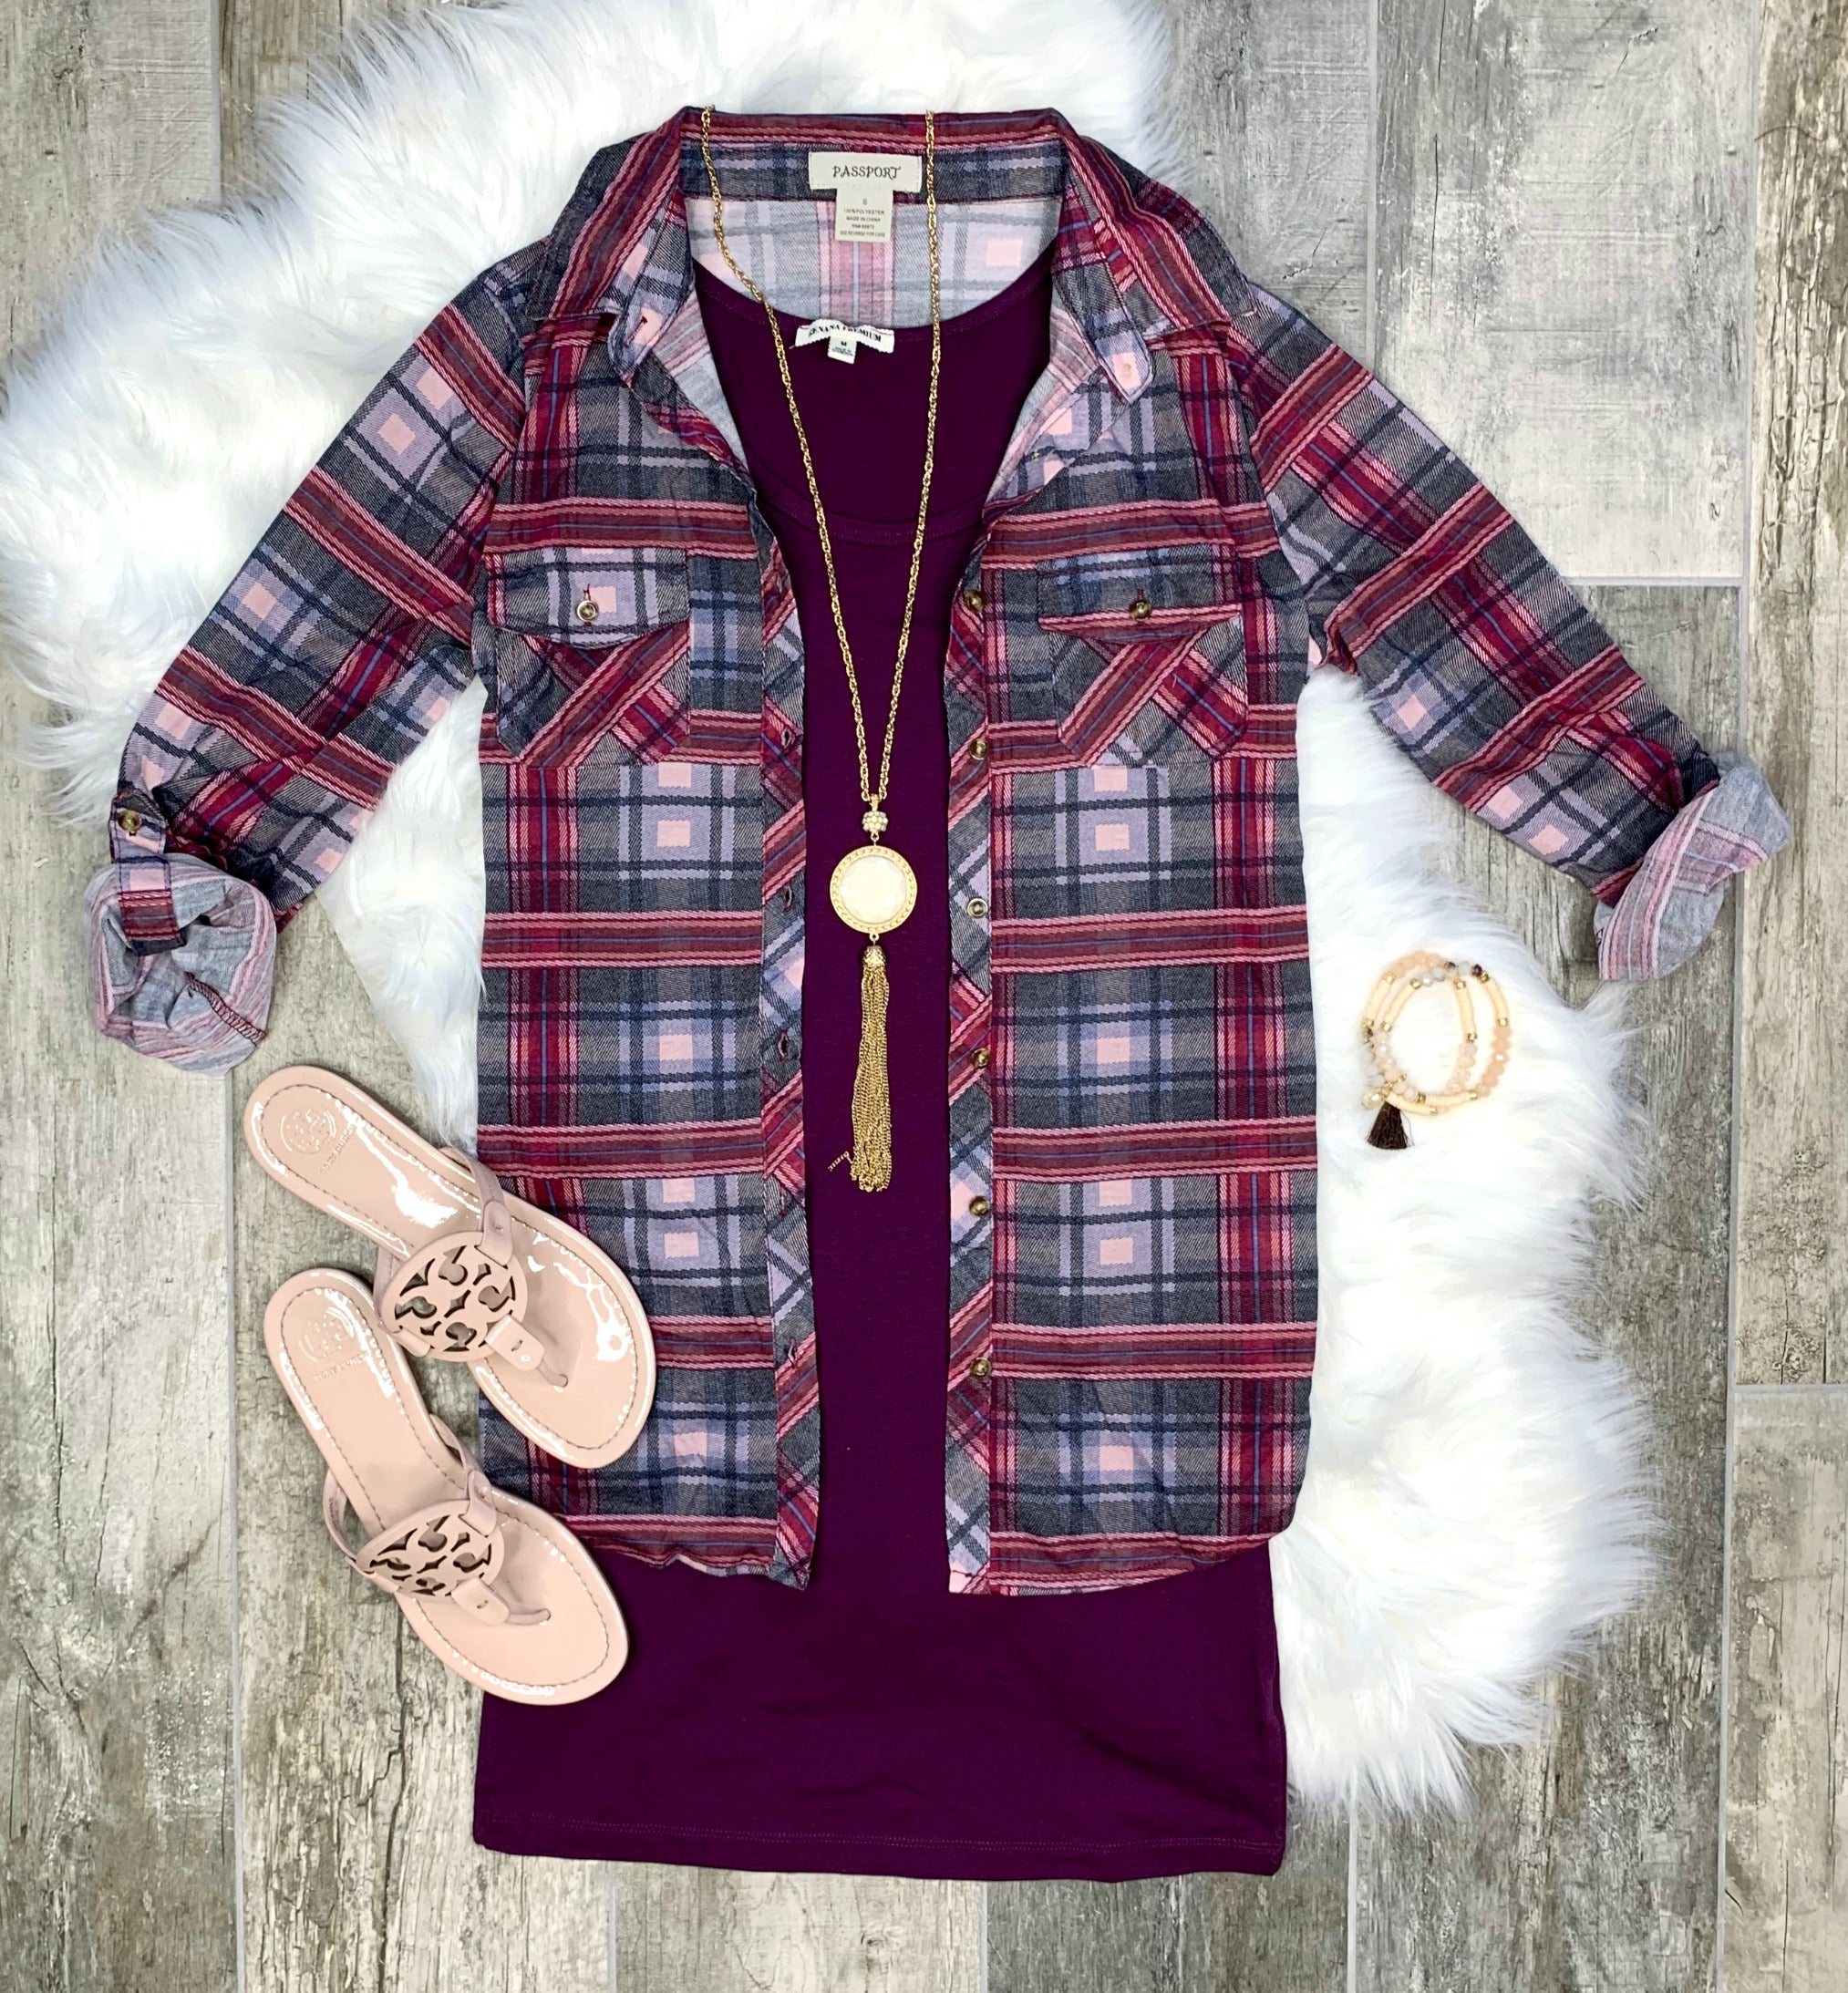 Penny Plaid Flannel Top - Berry/Blush